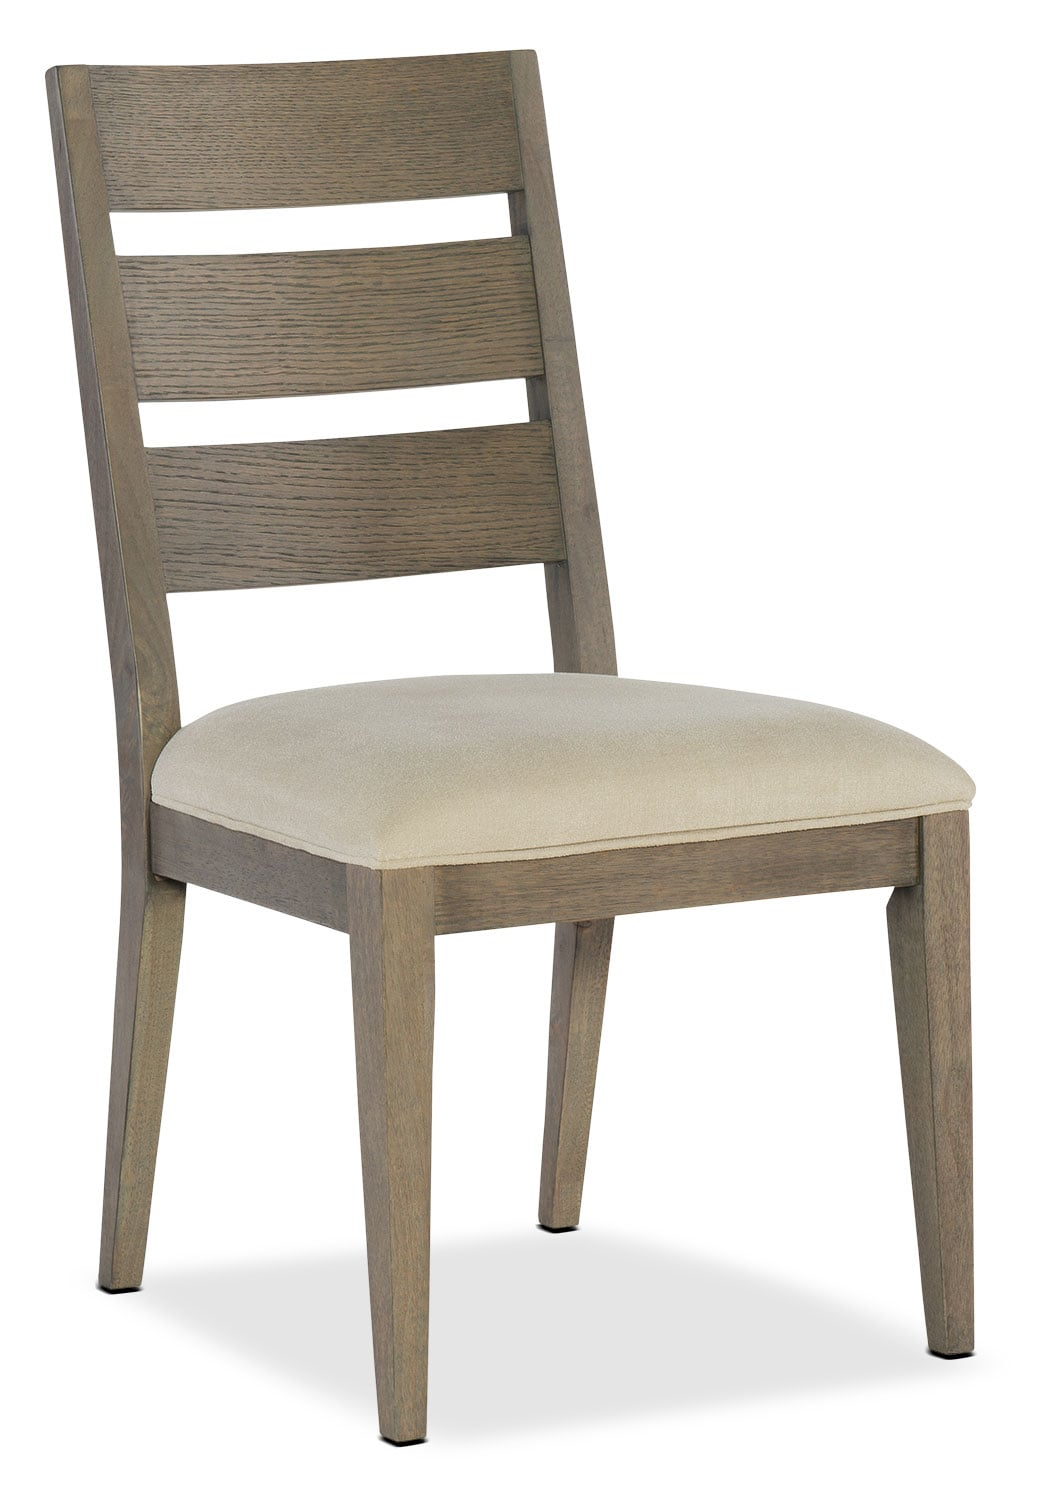 Rachael Ray Highline Ladder Side Chair - Greige